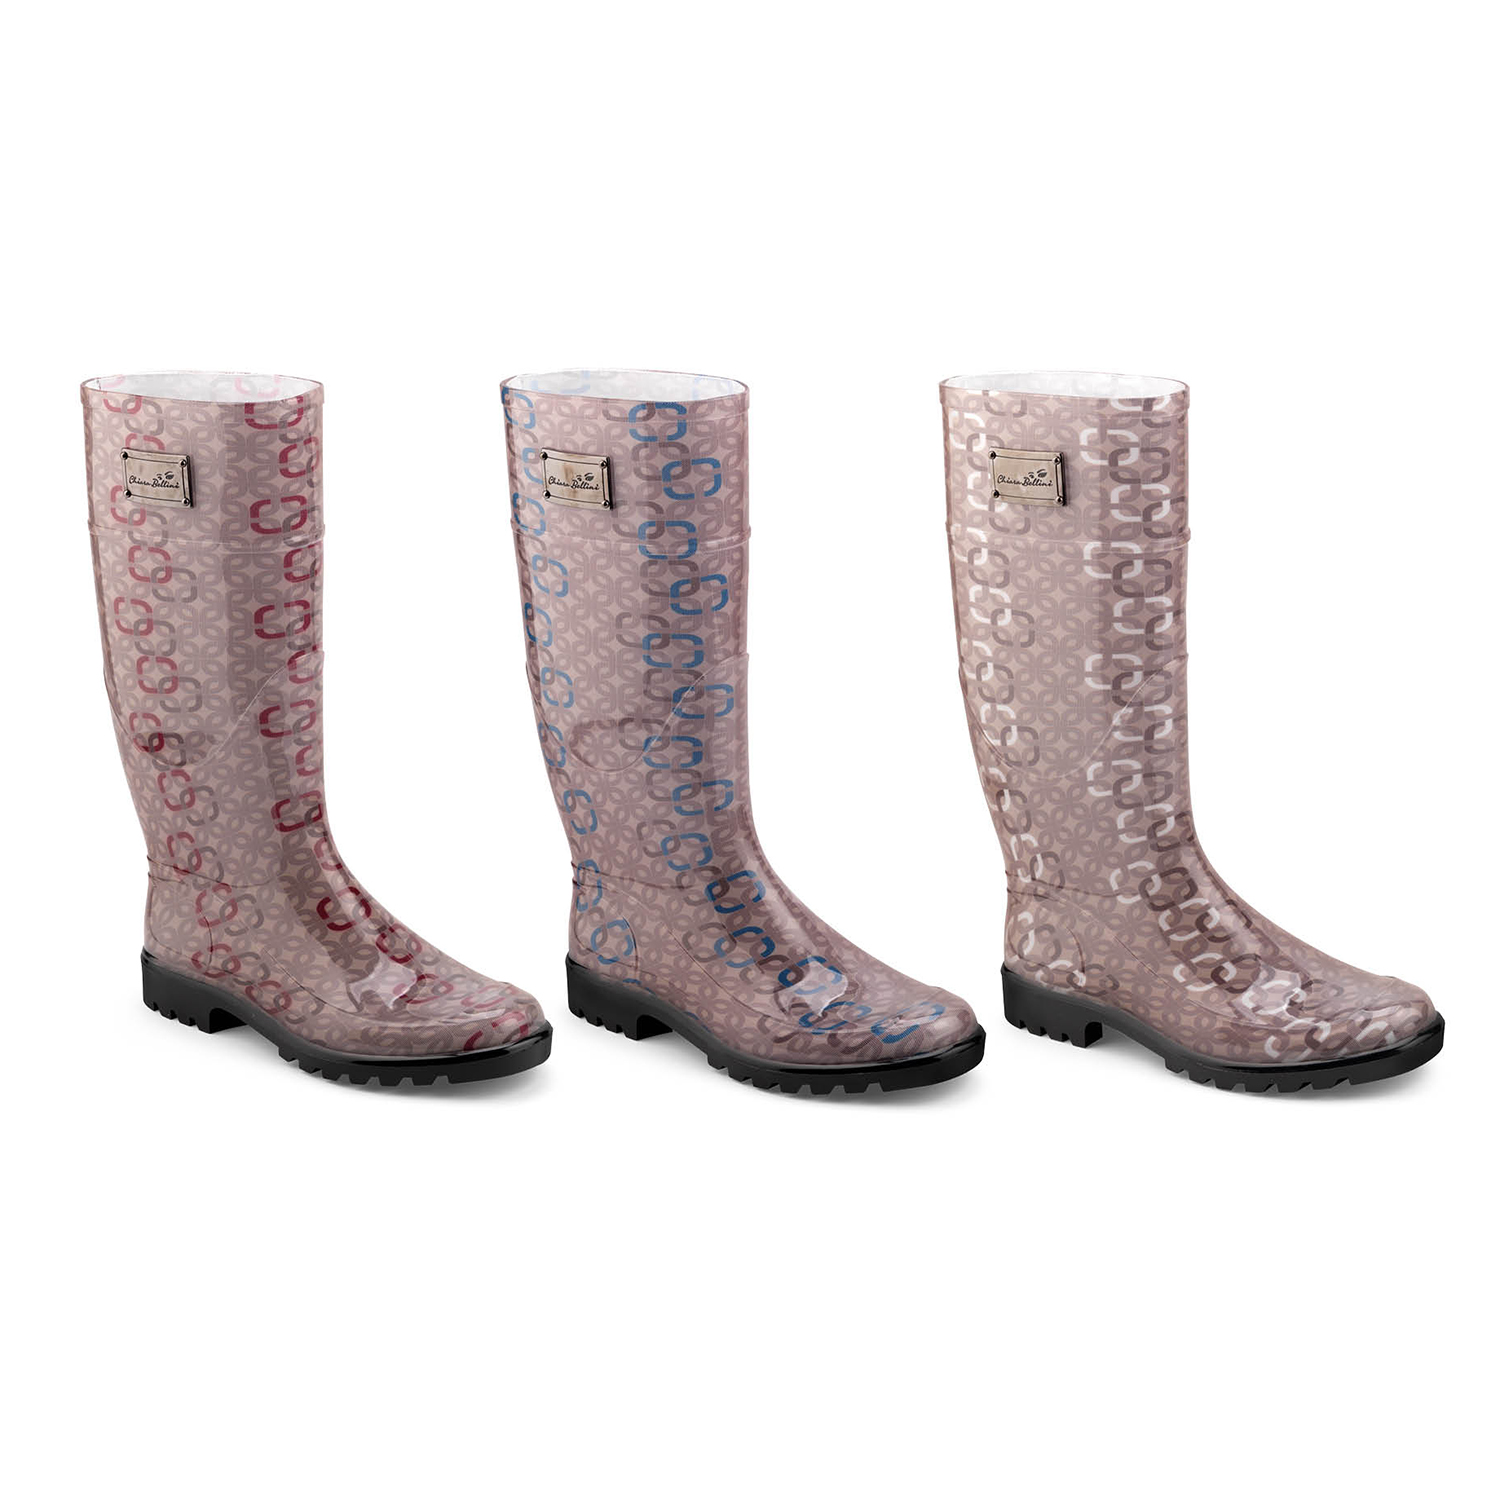 customized Texture print on high rainboot